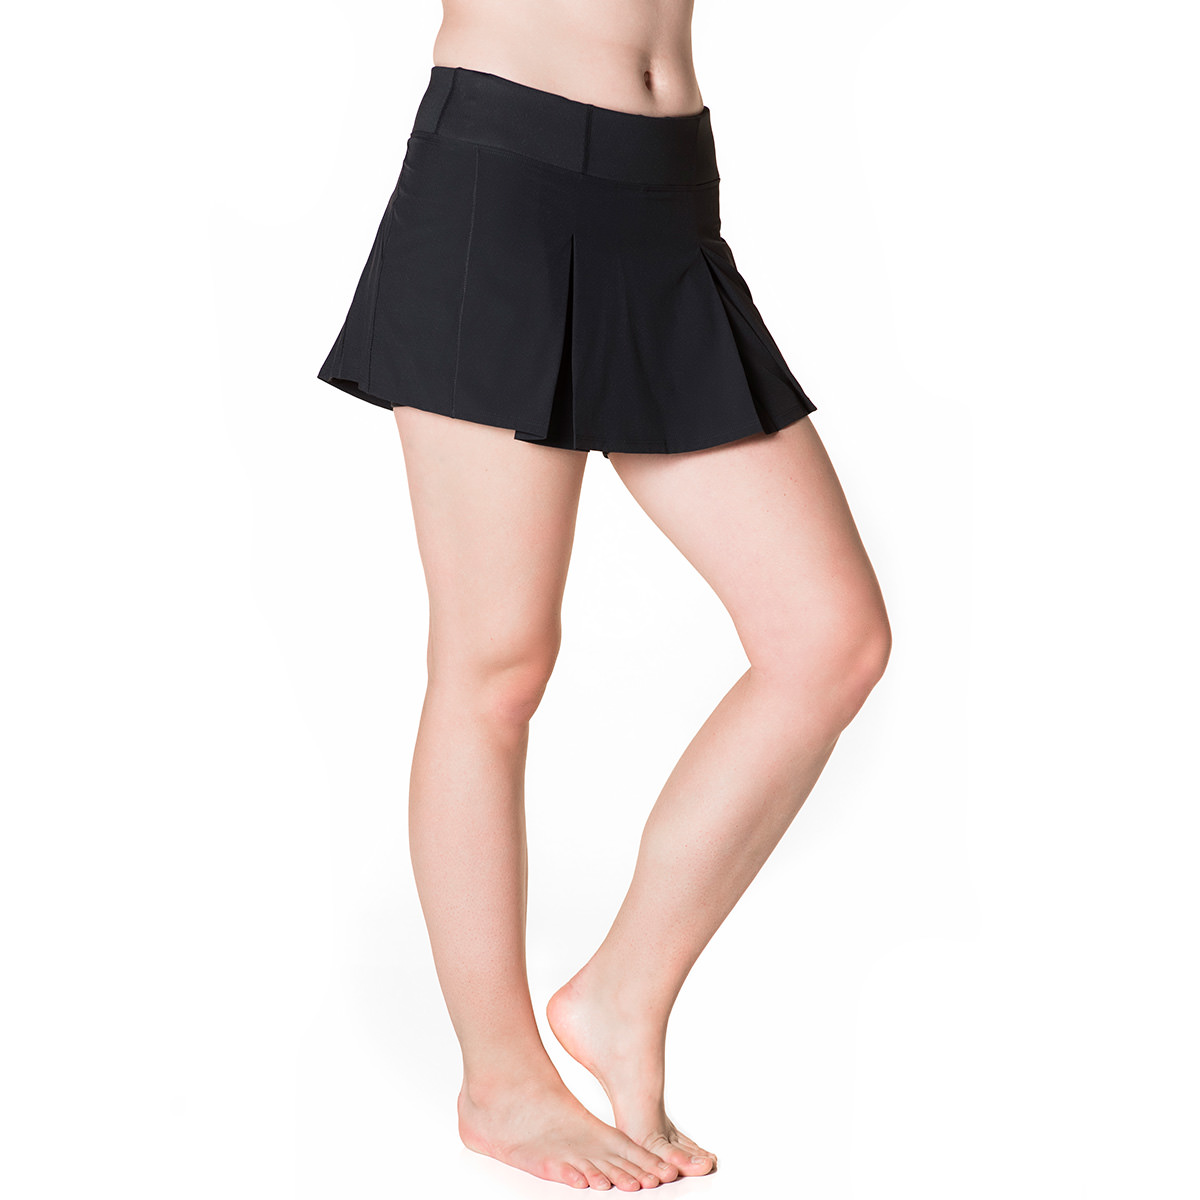 Details about  /Women/'s Skirt Sports Athletic Jette Skirt Black W//Music Port Size XS